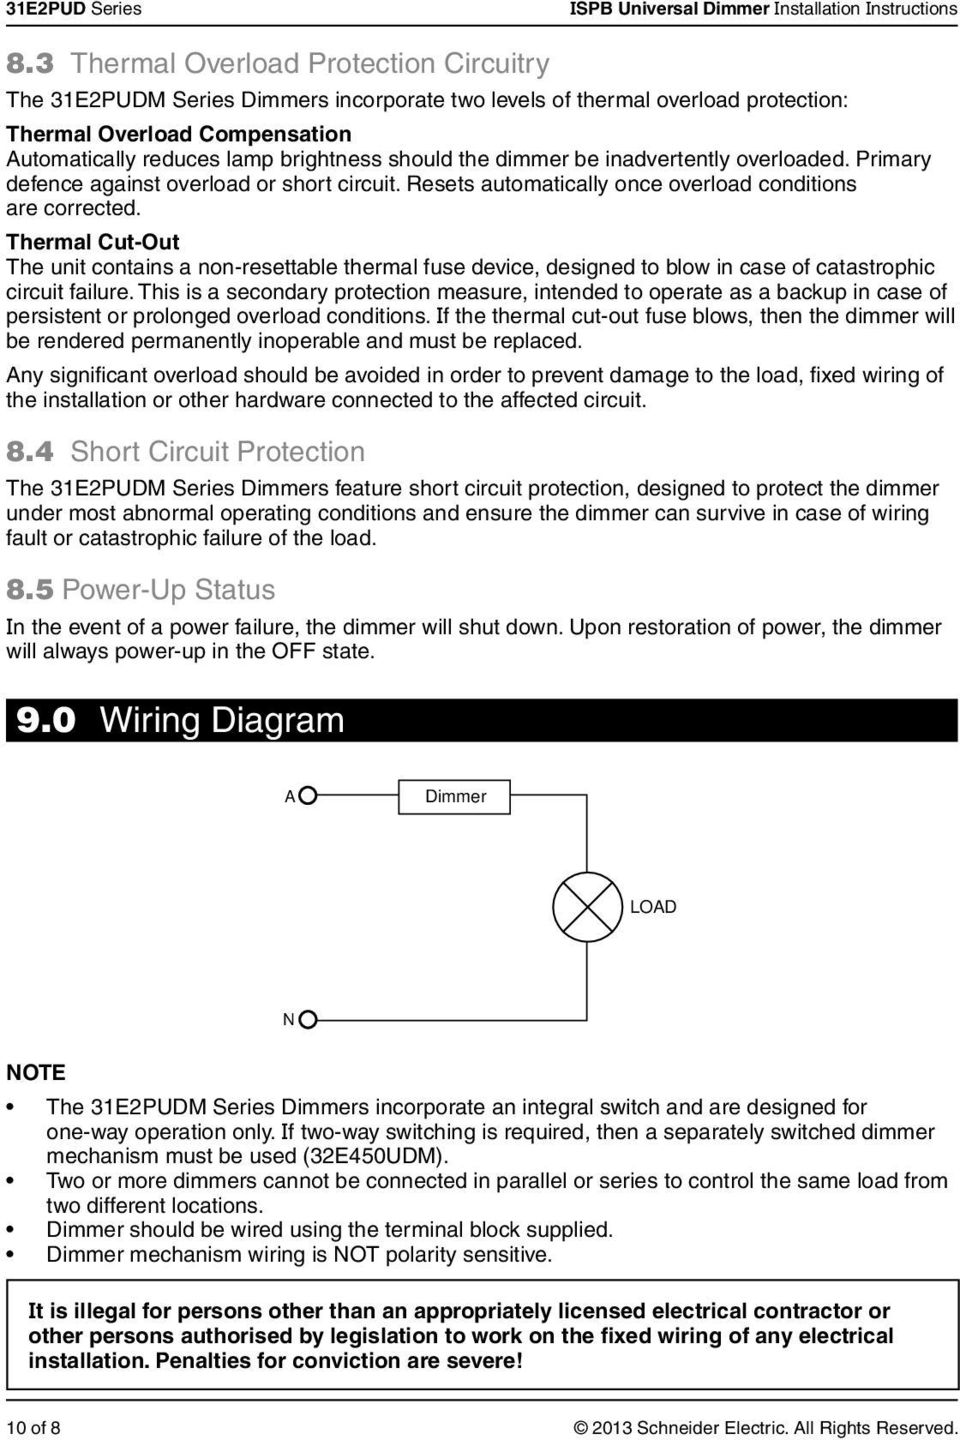 Universal Dimmer 31e2pud Series Push Button Installation Led Rocker Switch Wiring Diagram 10 0 10v Thermal Cut Out The Unit Contains A Non Resettable Fuse Device Designed 11 100 Electrical Specifications